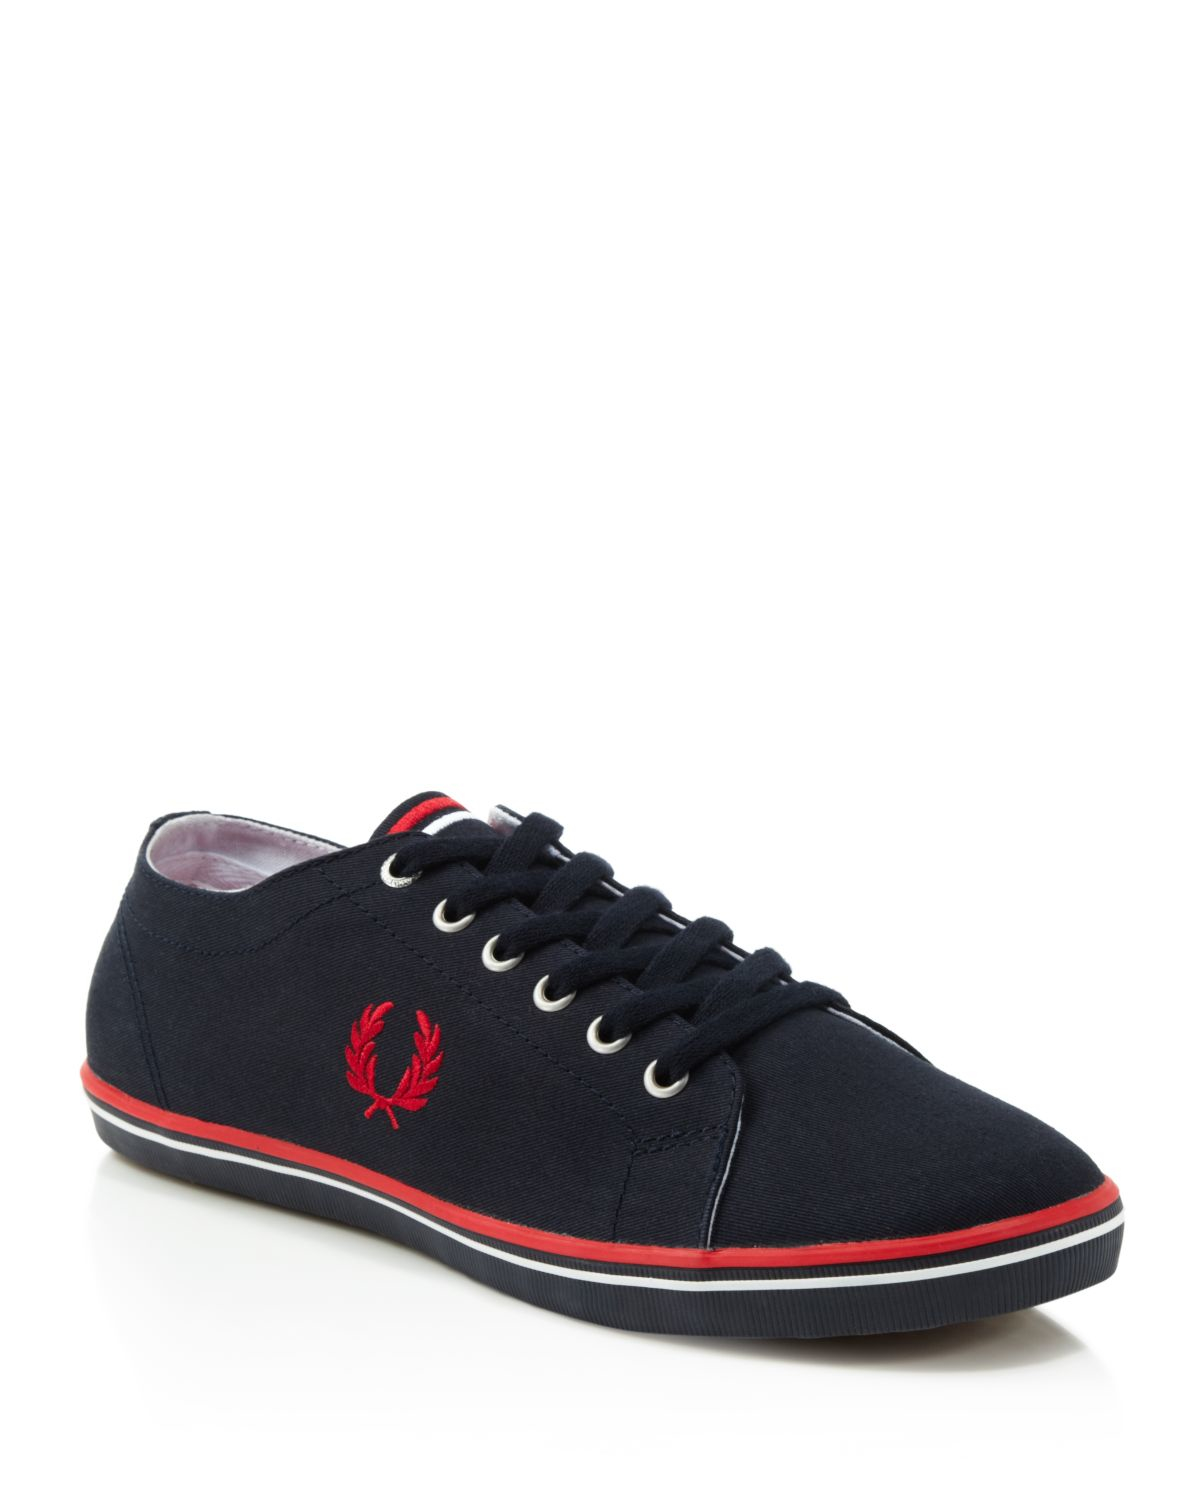 fred perry kingston twill sneakers in red for men navy. Black Bedroom Furniture Sets. Home Design Ideas